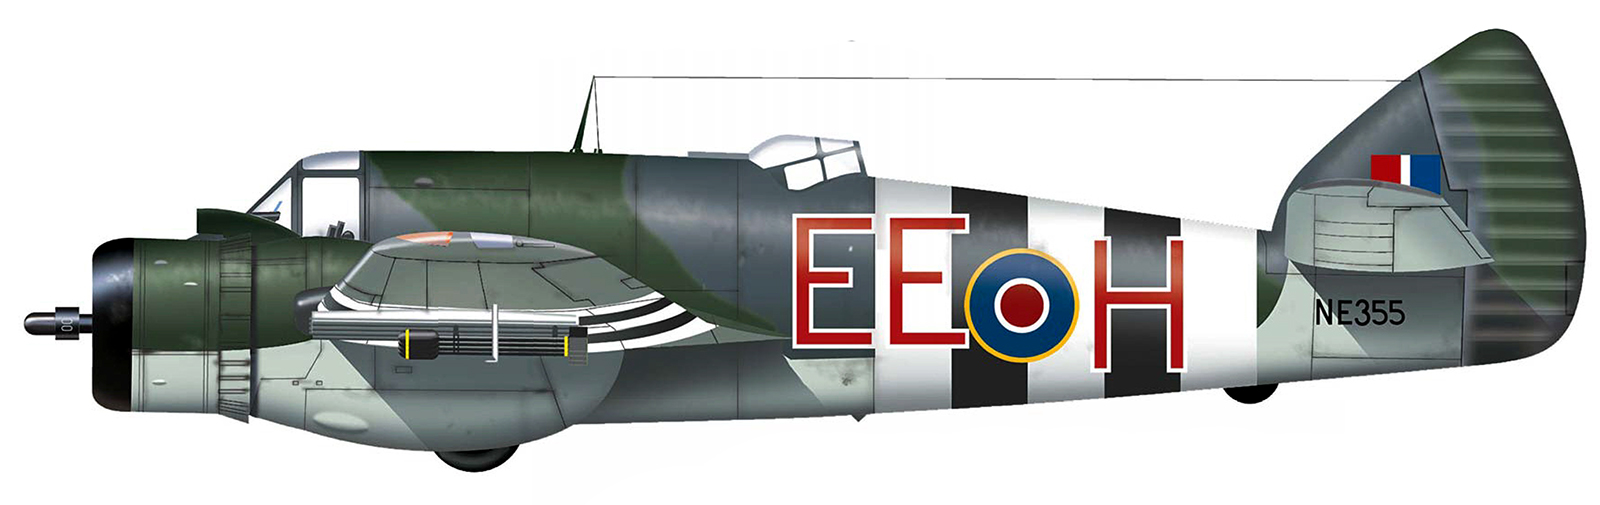 Beaufighter X RCAF EEH NE335 Engalnd June 1944 Profile 0A